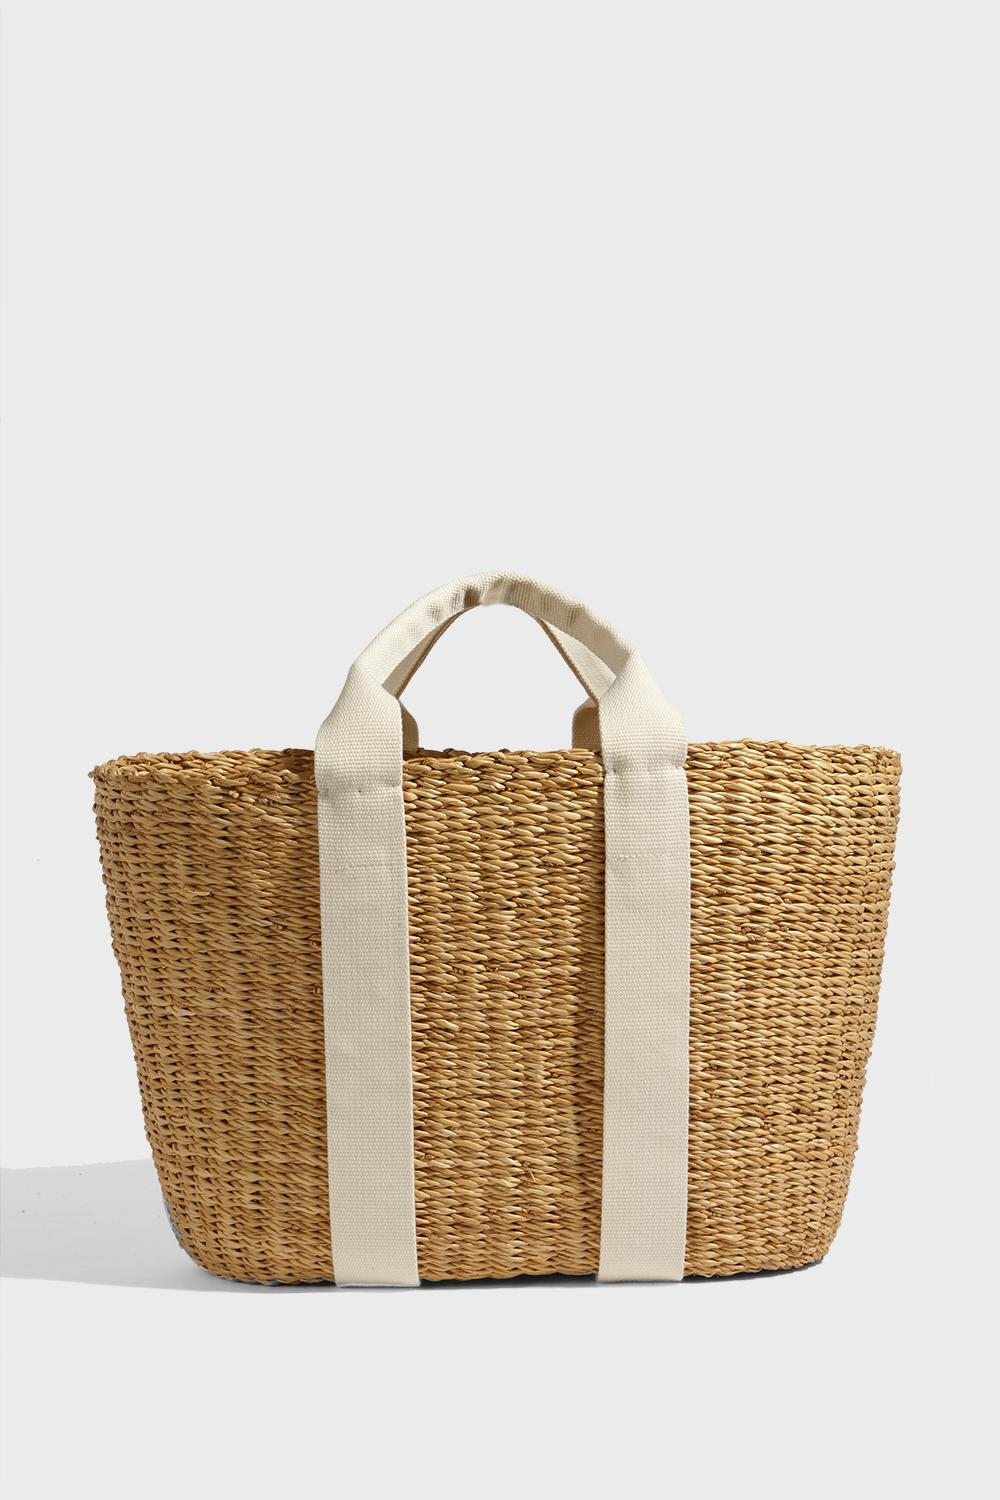 Caba Hand-Woven Straw Bag